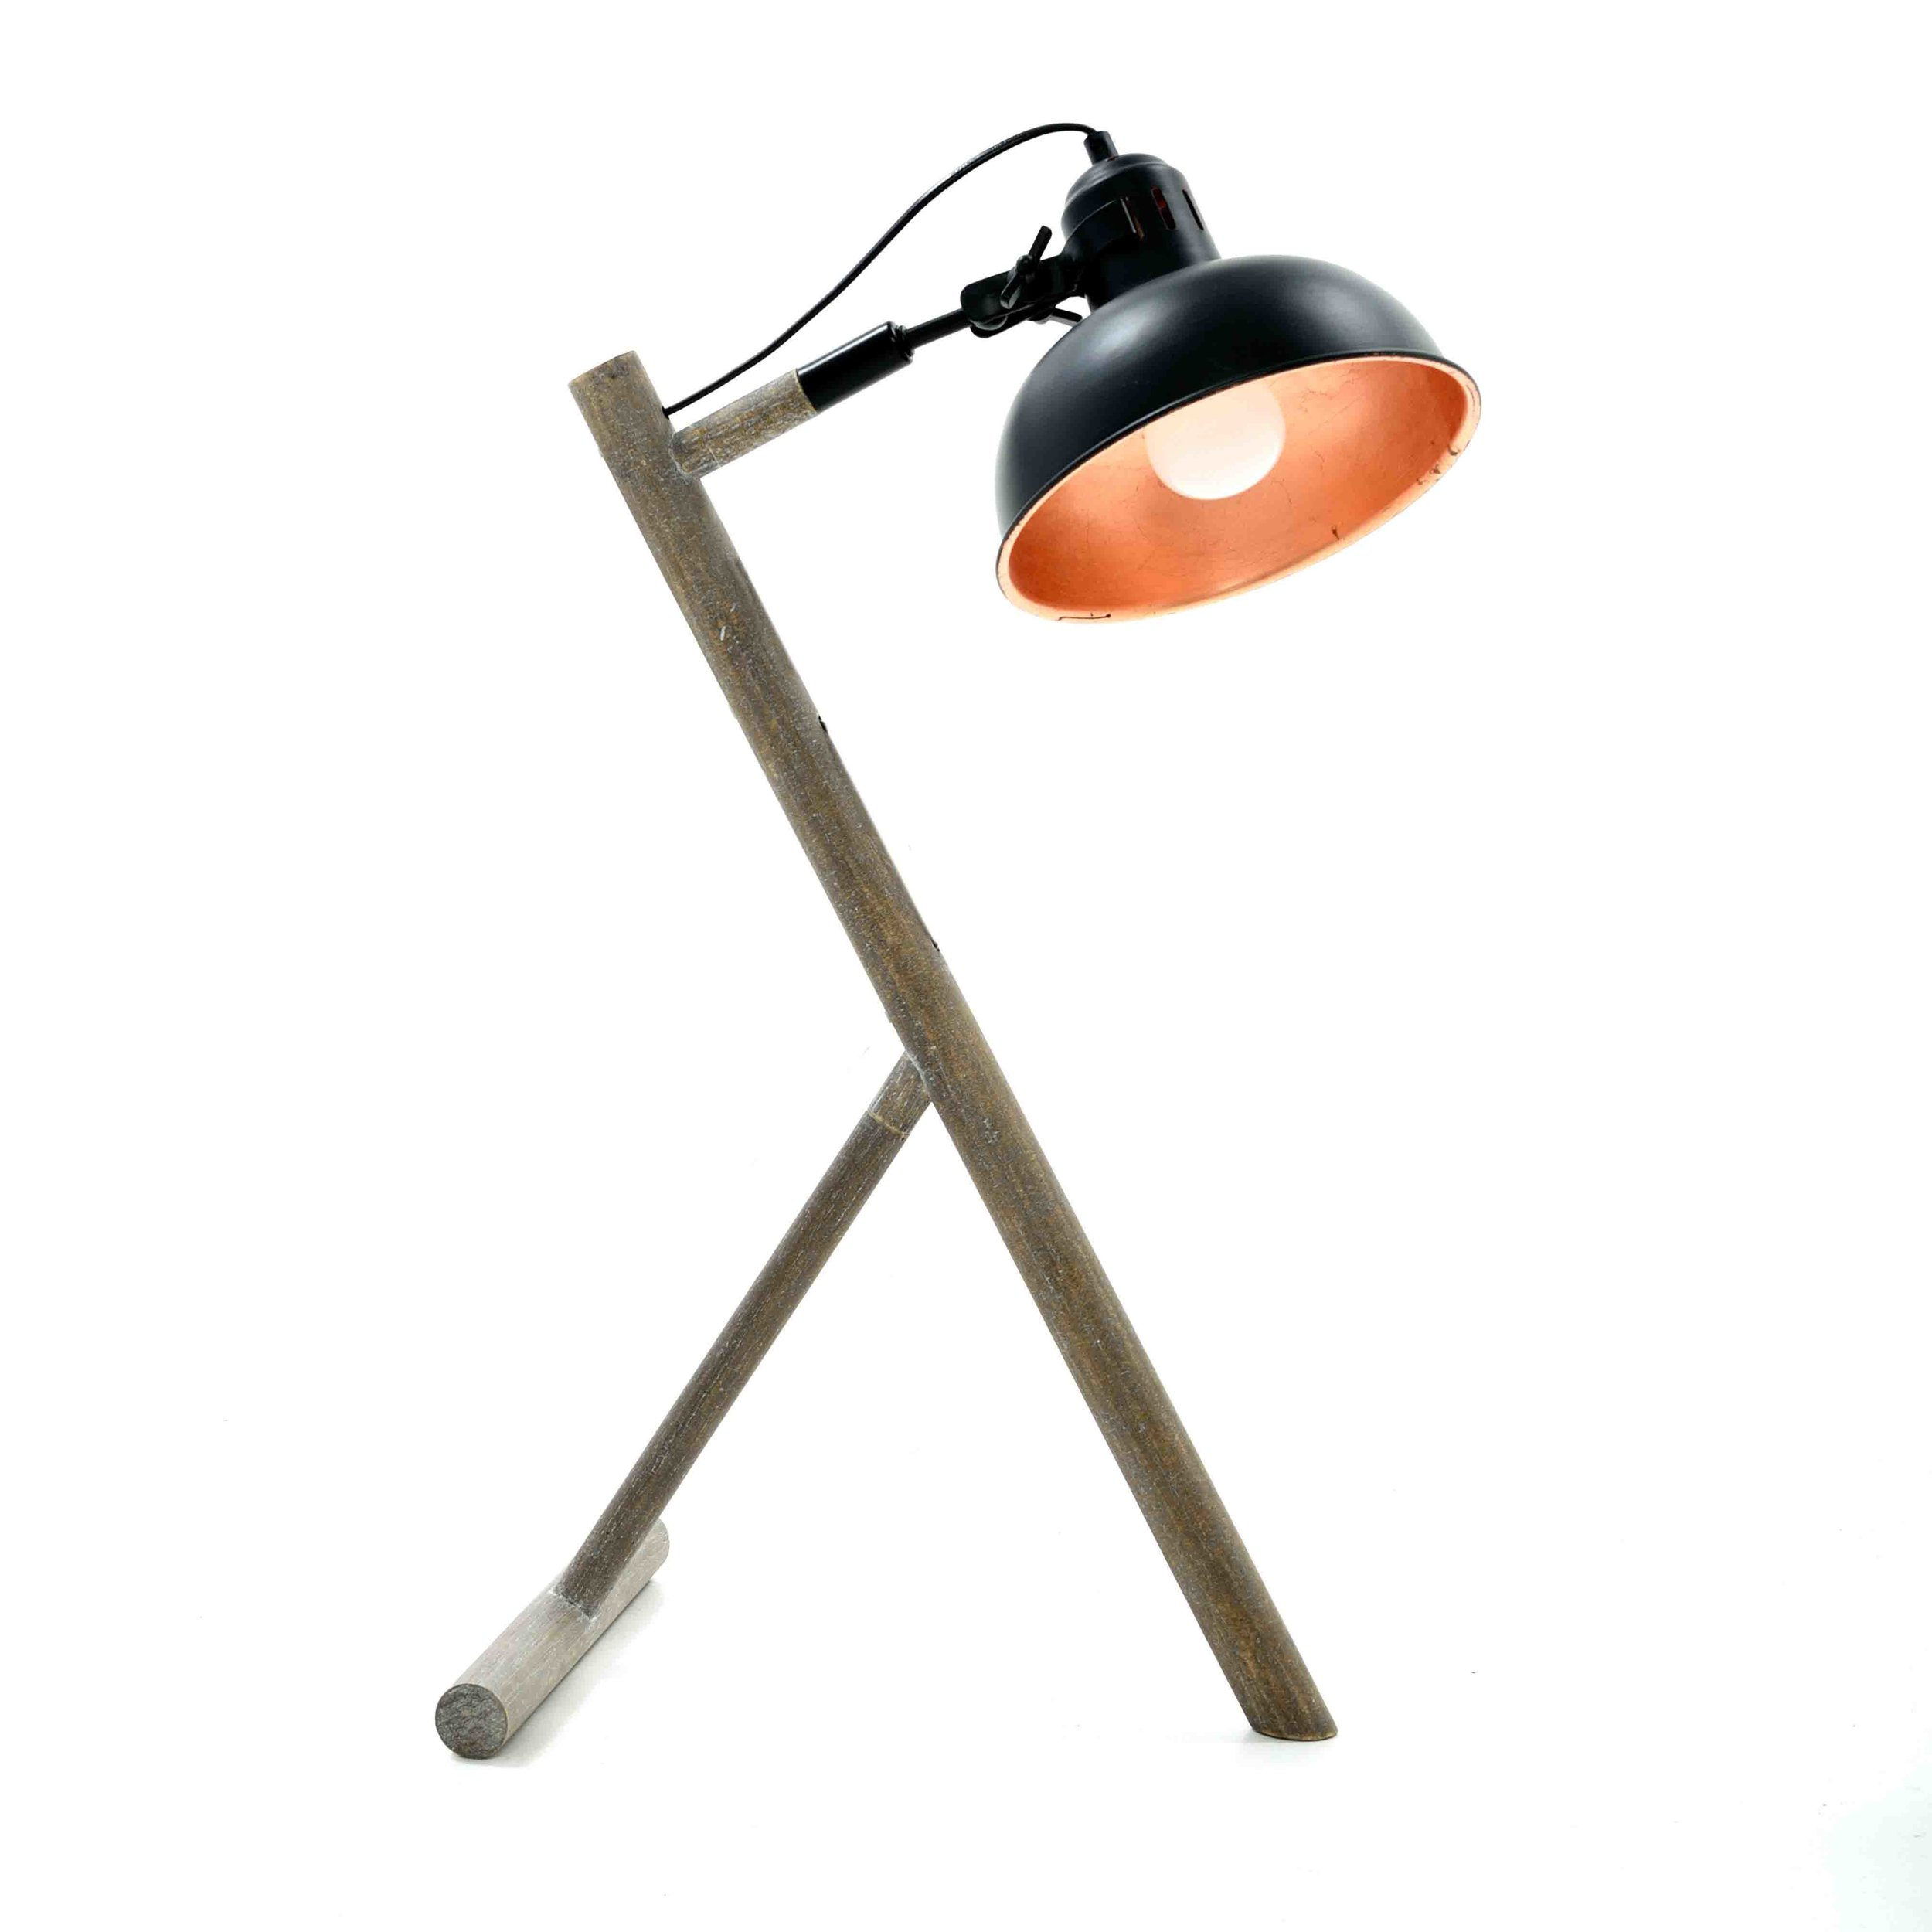 €130 WOODEN/METAL TABLE LAMP IN BLACK COLOR 42X25X68